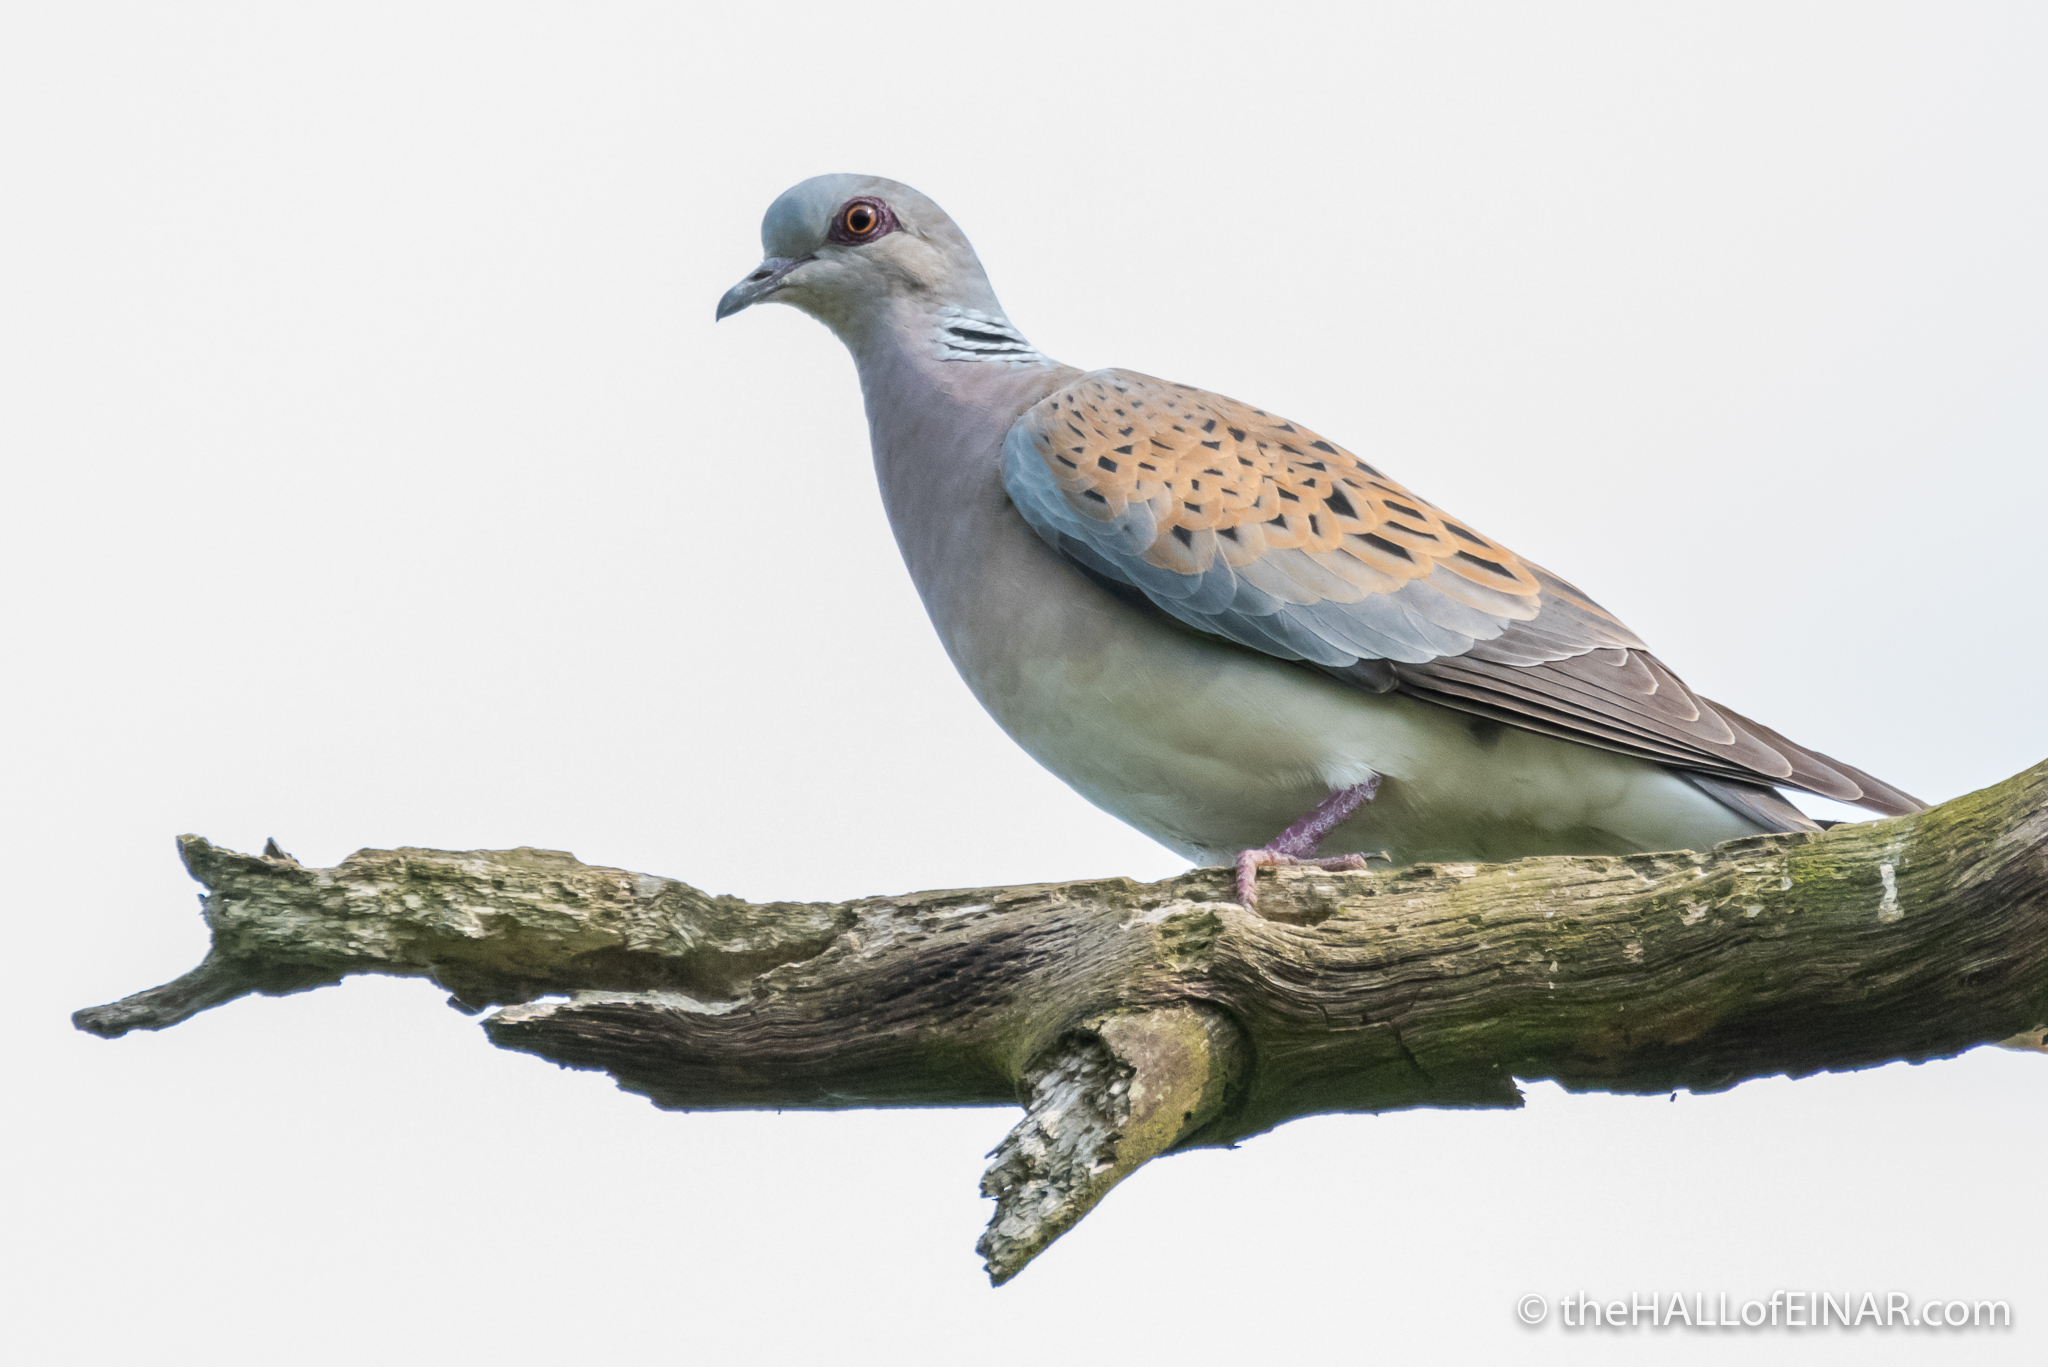 Turtle Dove - Otmoor - The Hall of Einar - photograph (c) David Bailey (not the)